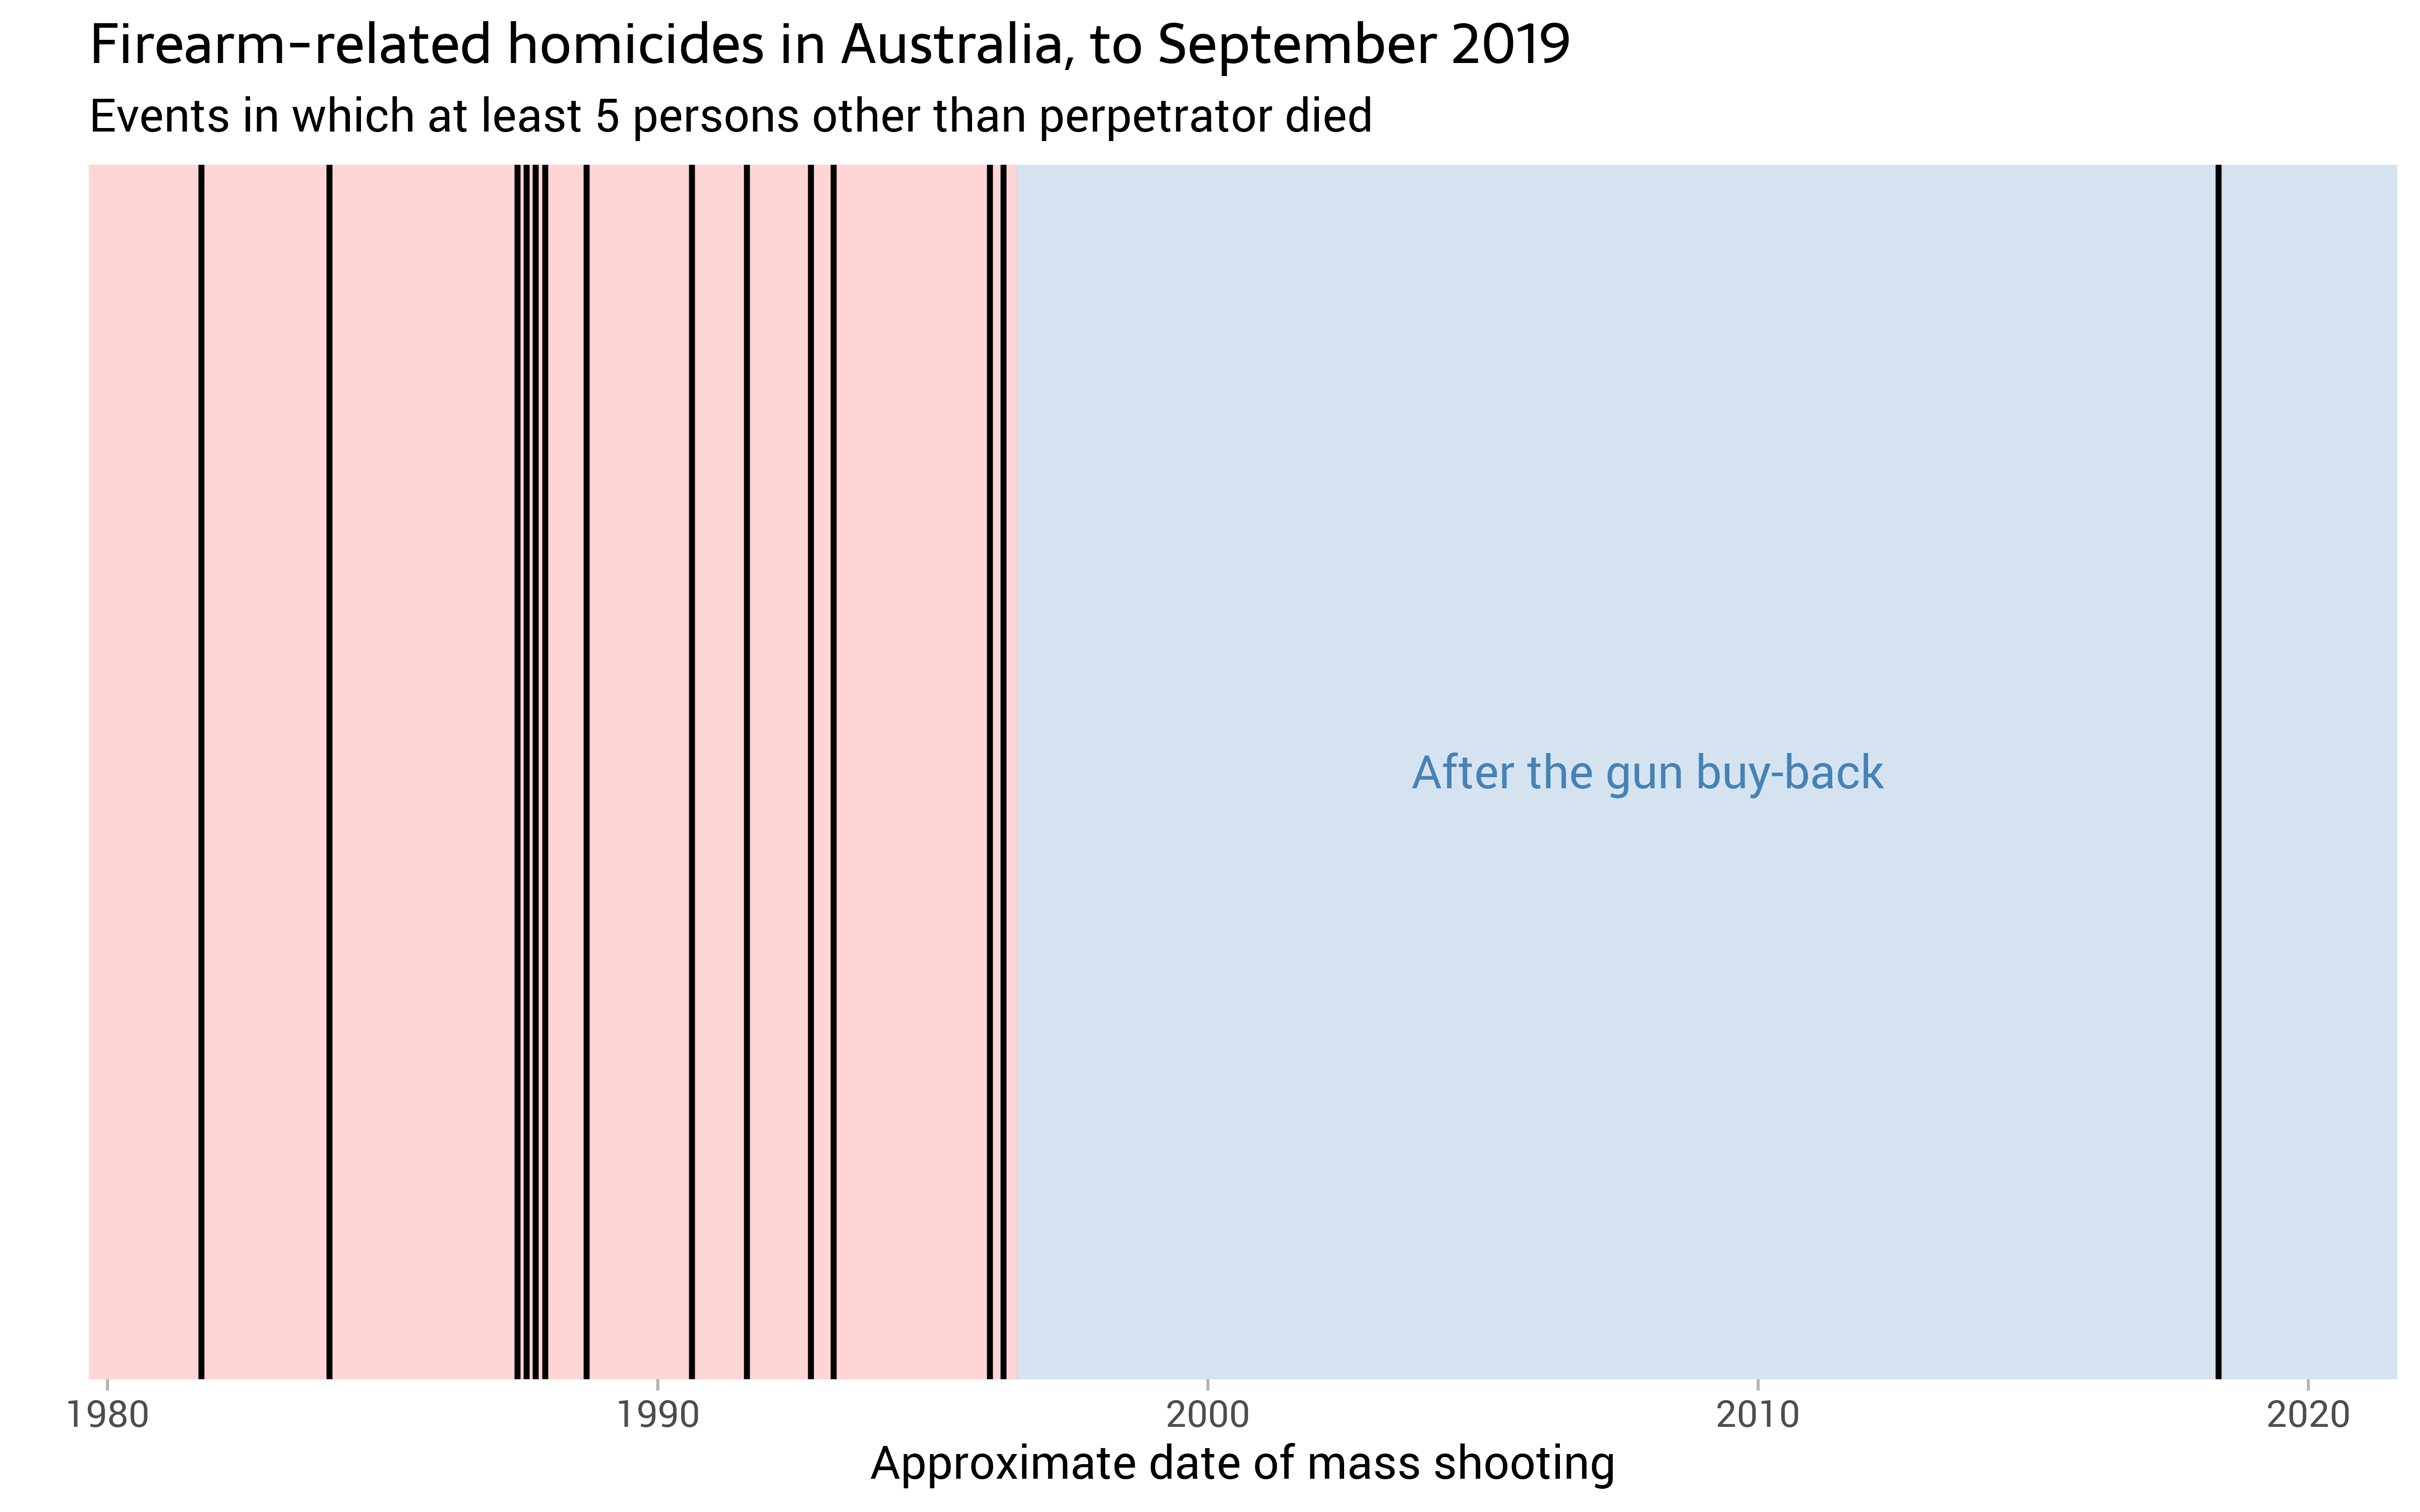 Poisson point processes, mass shootings and clumping by